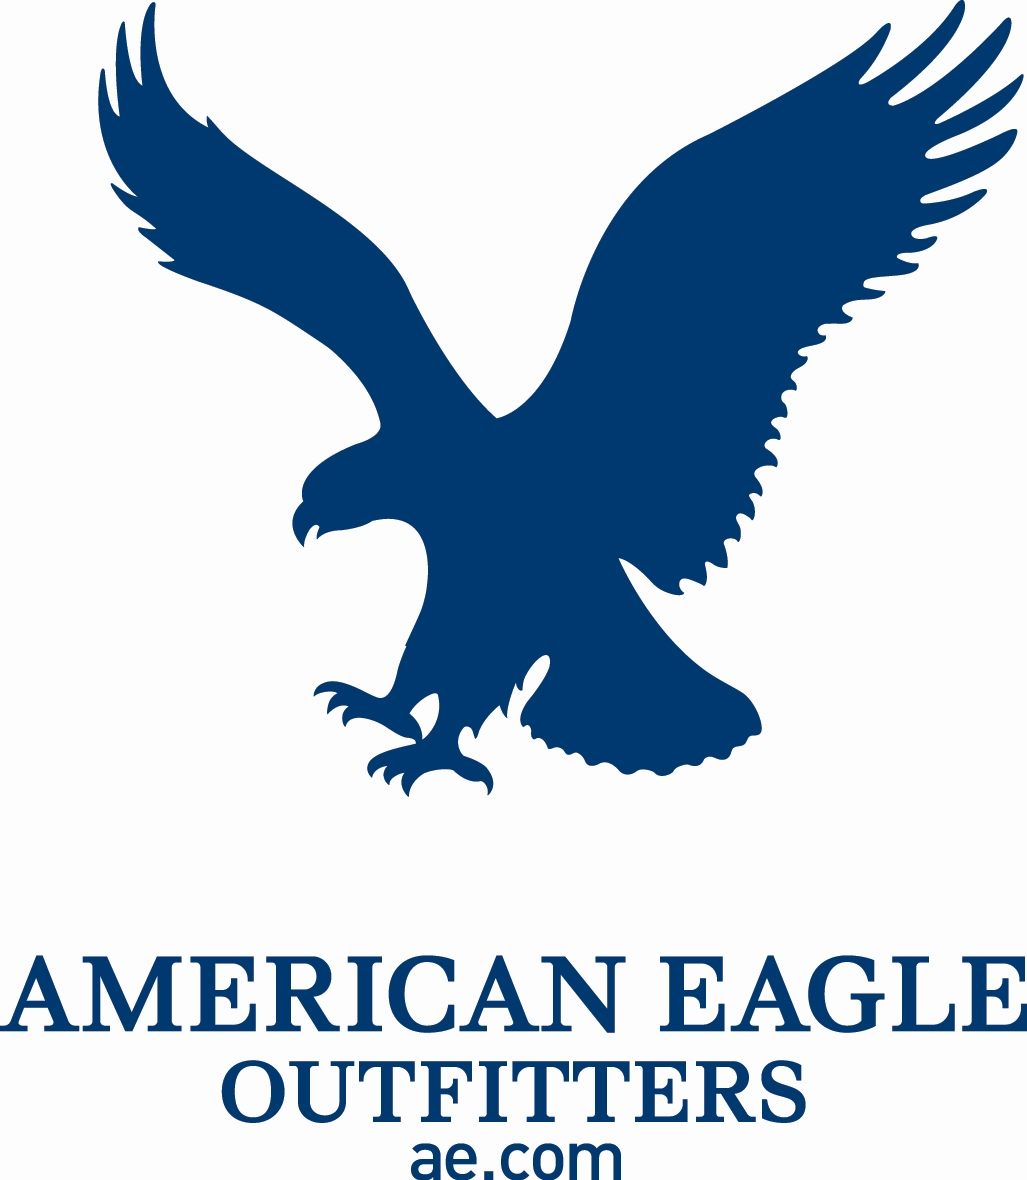 American Eagle Credit Card Login >> American Eagle Outfitters Credit Card Payment - Login - Address - Customer Service